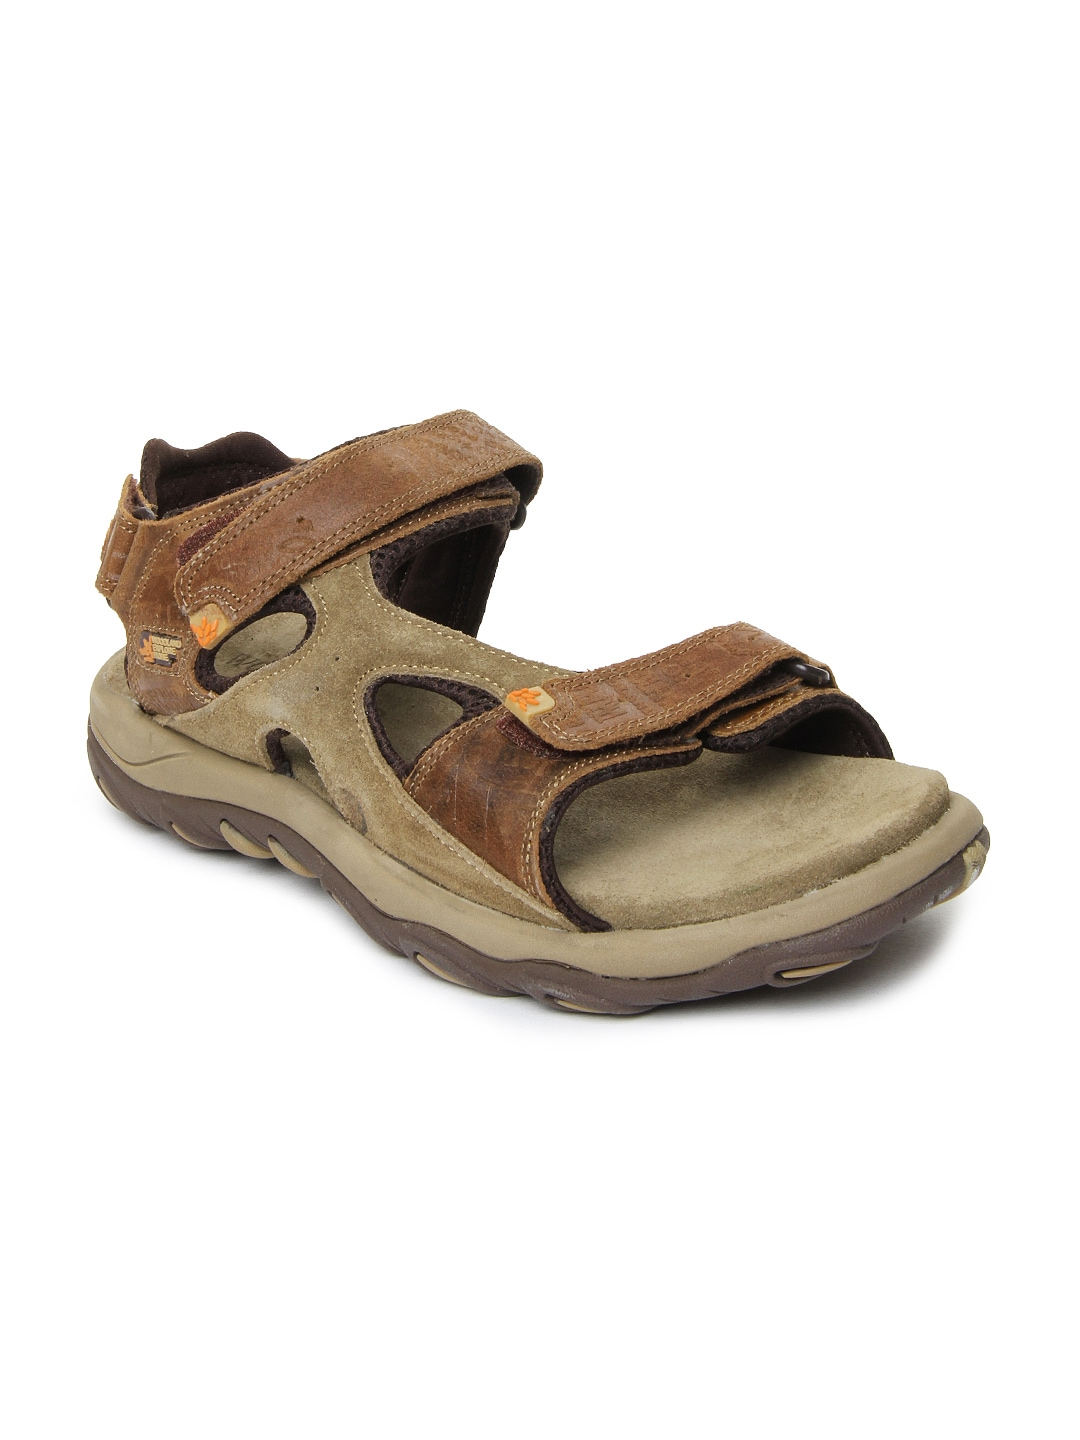 6ec16603bc8 Woodland gd-1129112w13-camel Men Brown Leather Sandals- Price in India